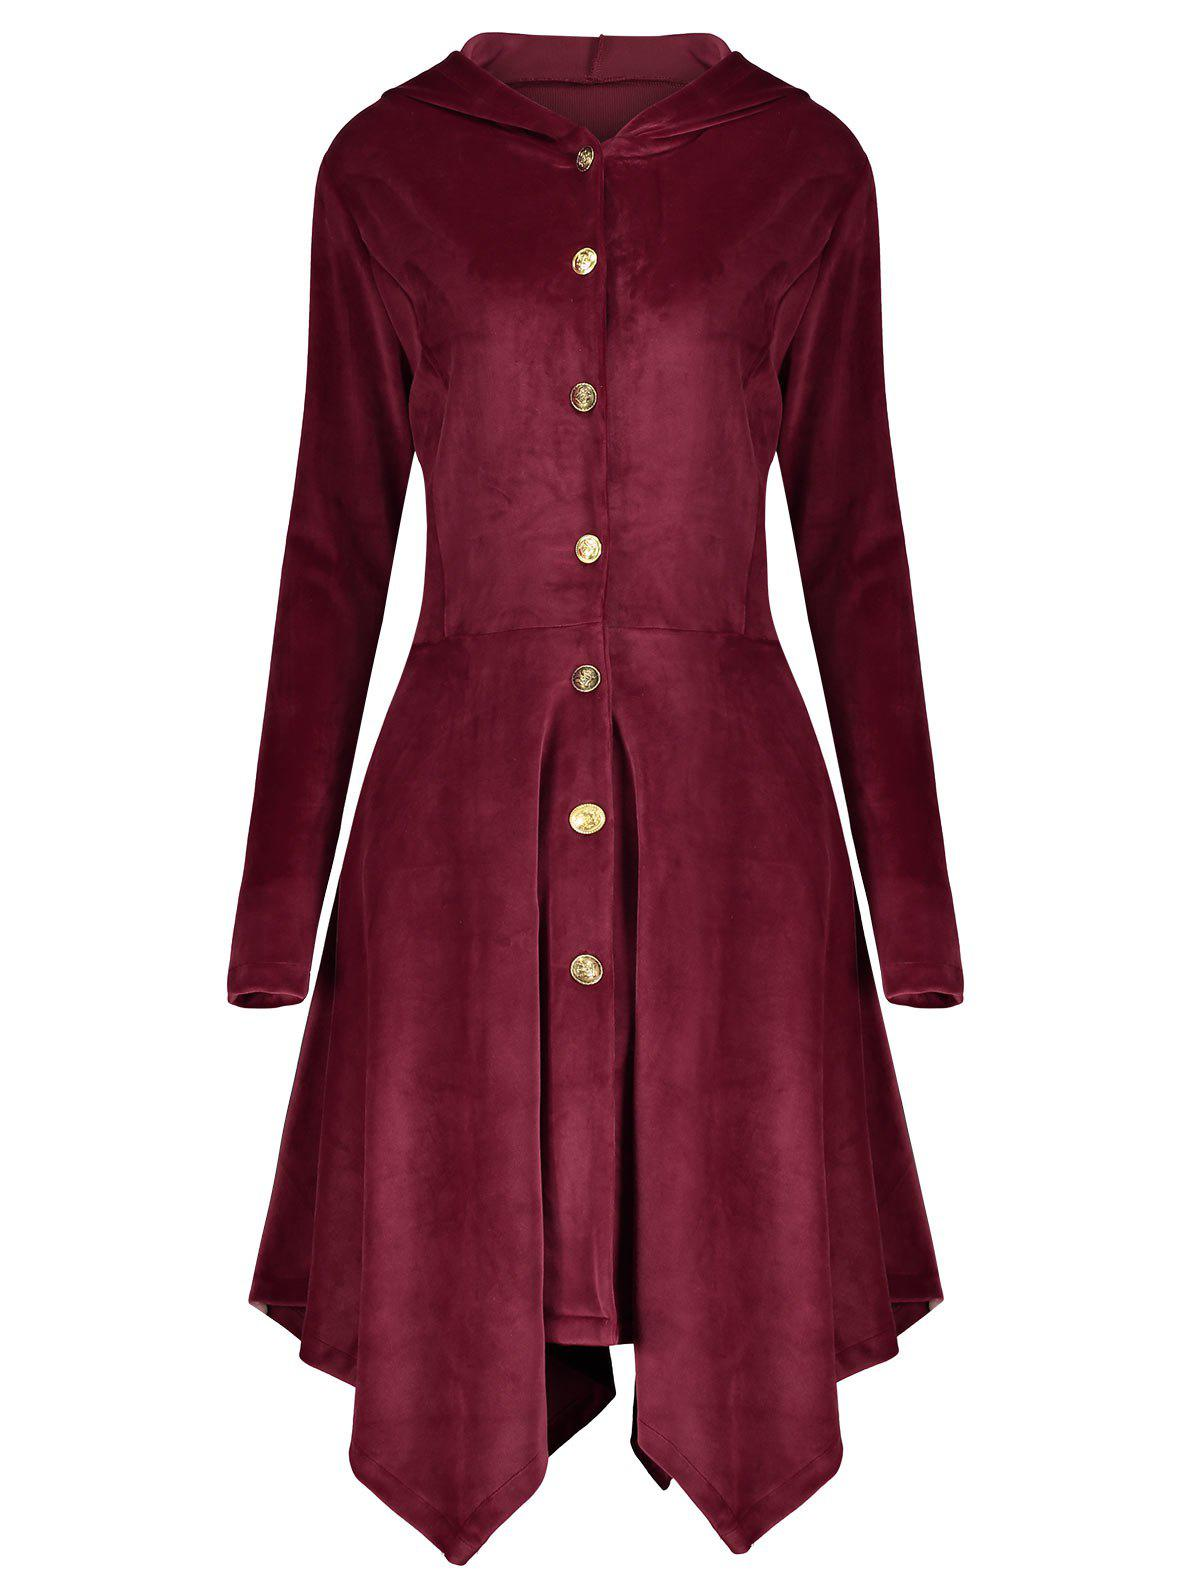 Velvet Asymmetric Plus Size Button Up Hooded CoatWOMEN<br><br>Size: 5XL; Color: WINE RED; Clothes Type: Others; Material: Polyester,Spandex; Type: Asymmetric Length; Shirt Length: Long; Sleeve Length: Full; Collar: Hooded; Pattern Type: Solid; Style: Fashion; Season: Fall,Winter; Weight: 0.6700kg; Package Contents: 1 x Coat;